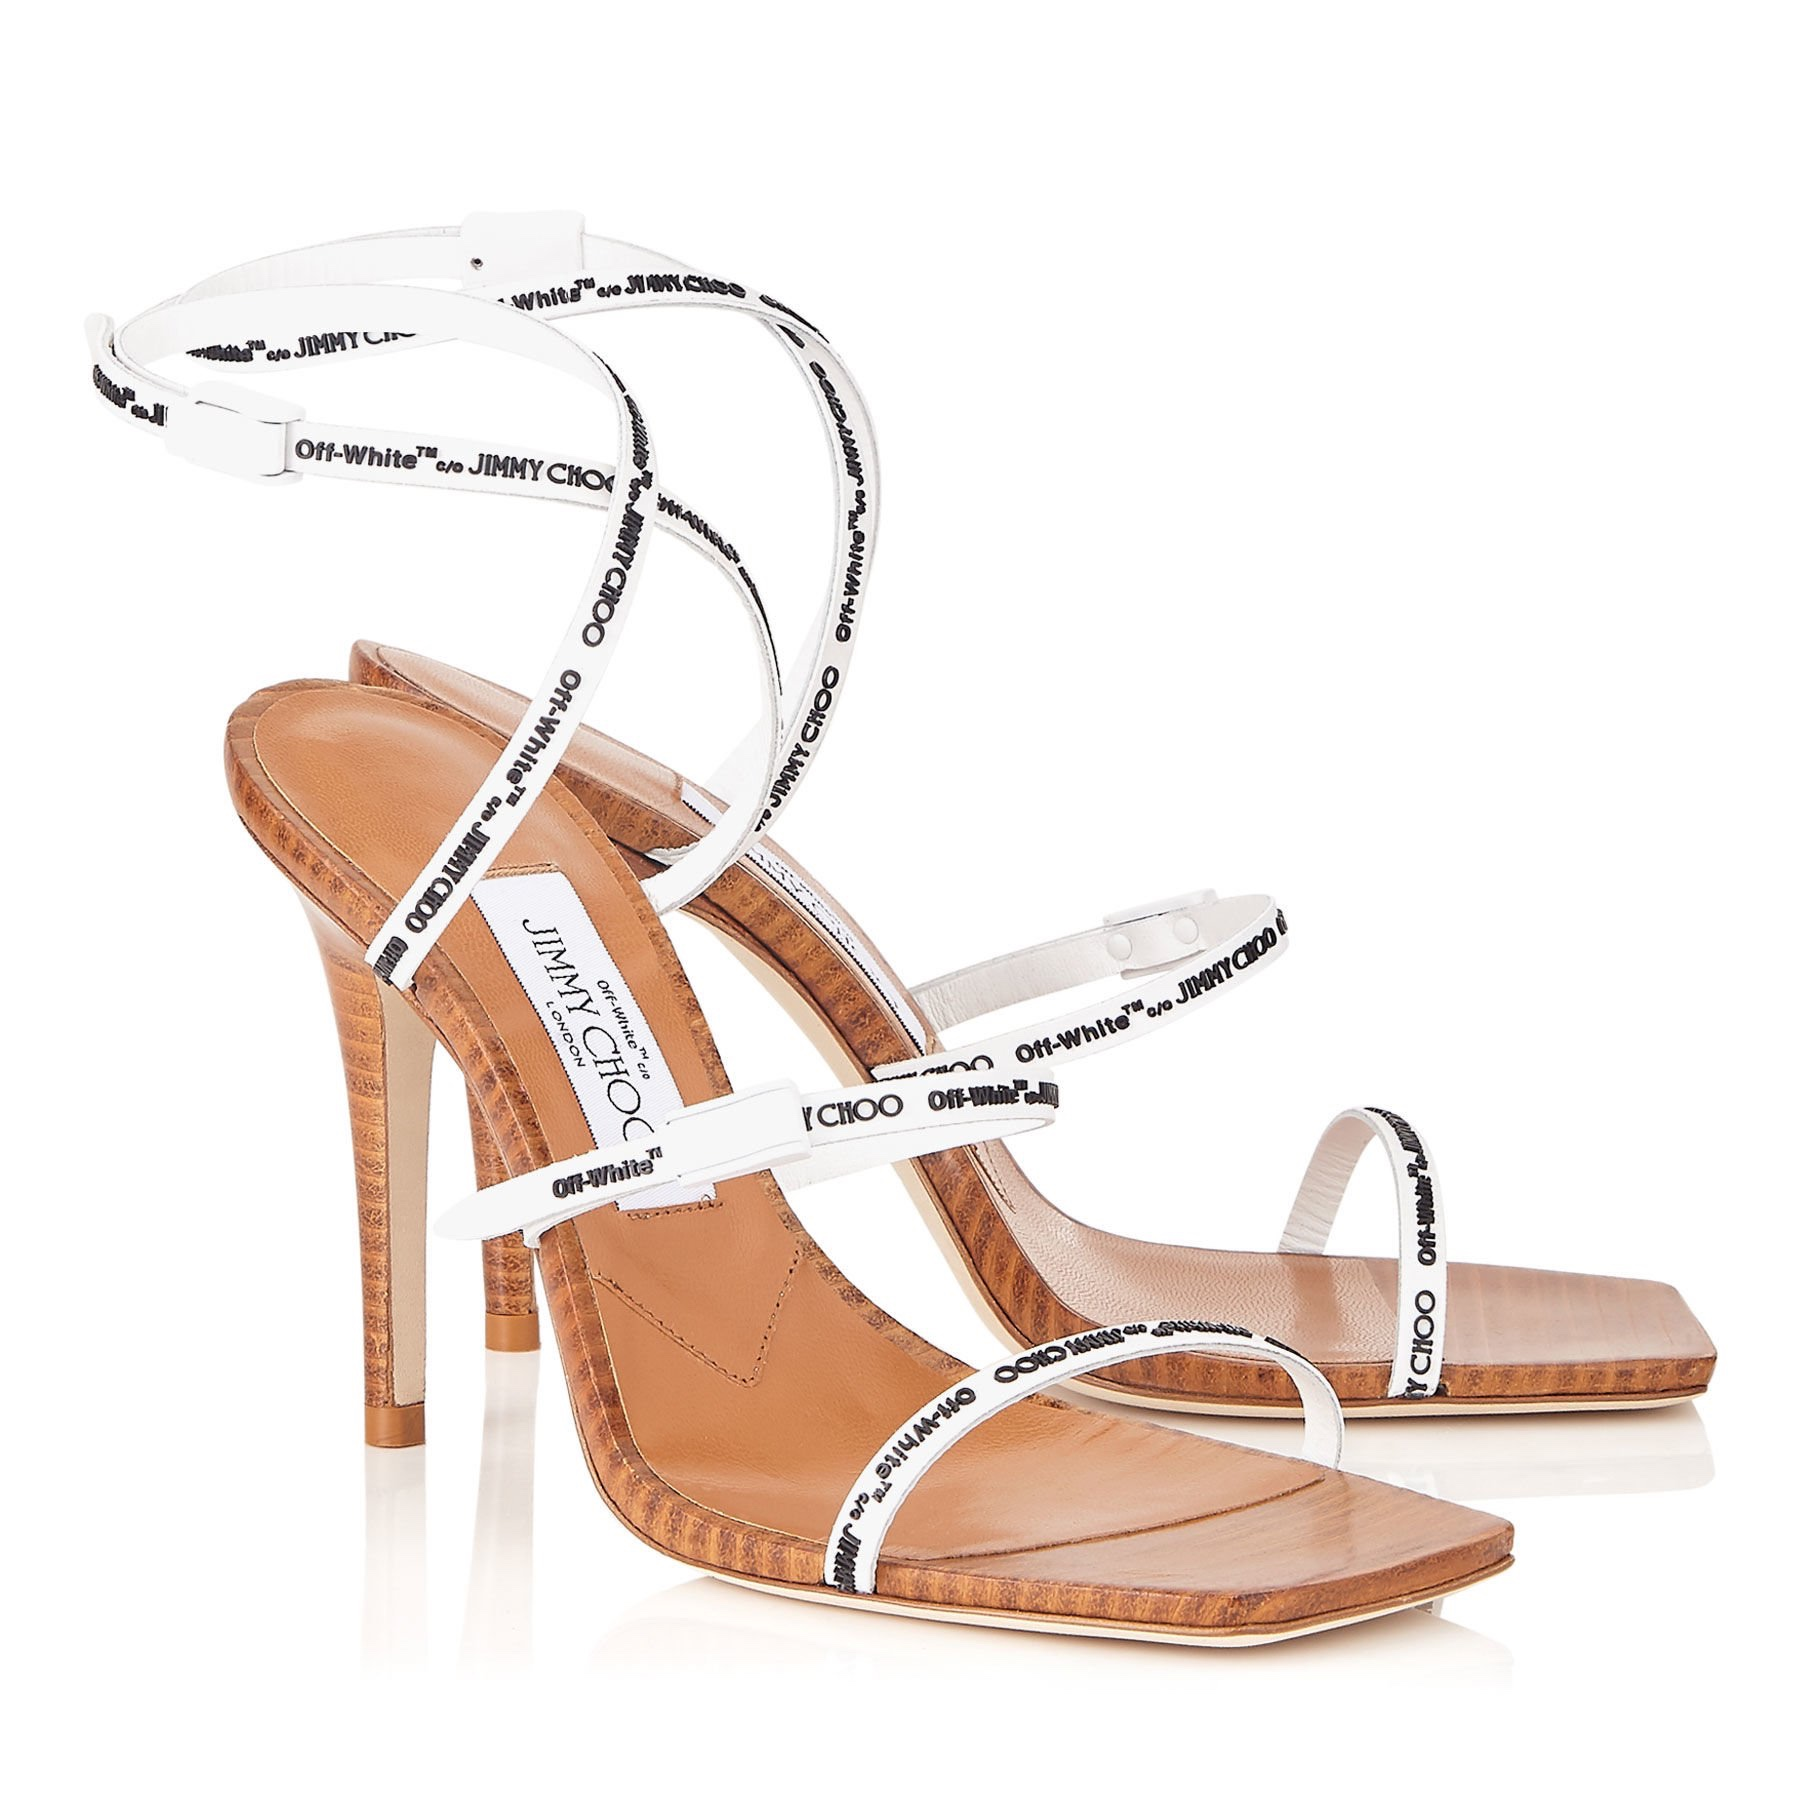 Jimmy Choo x Off-White collab sandals